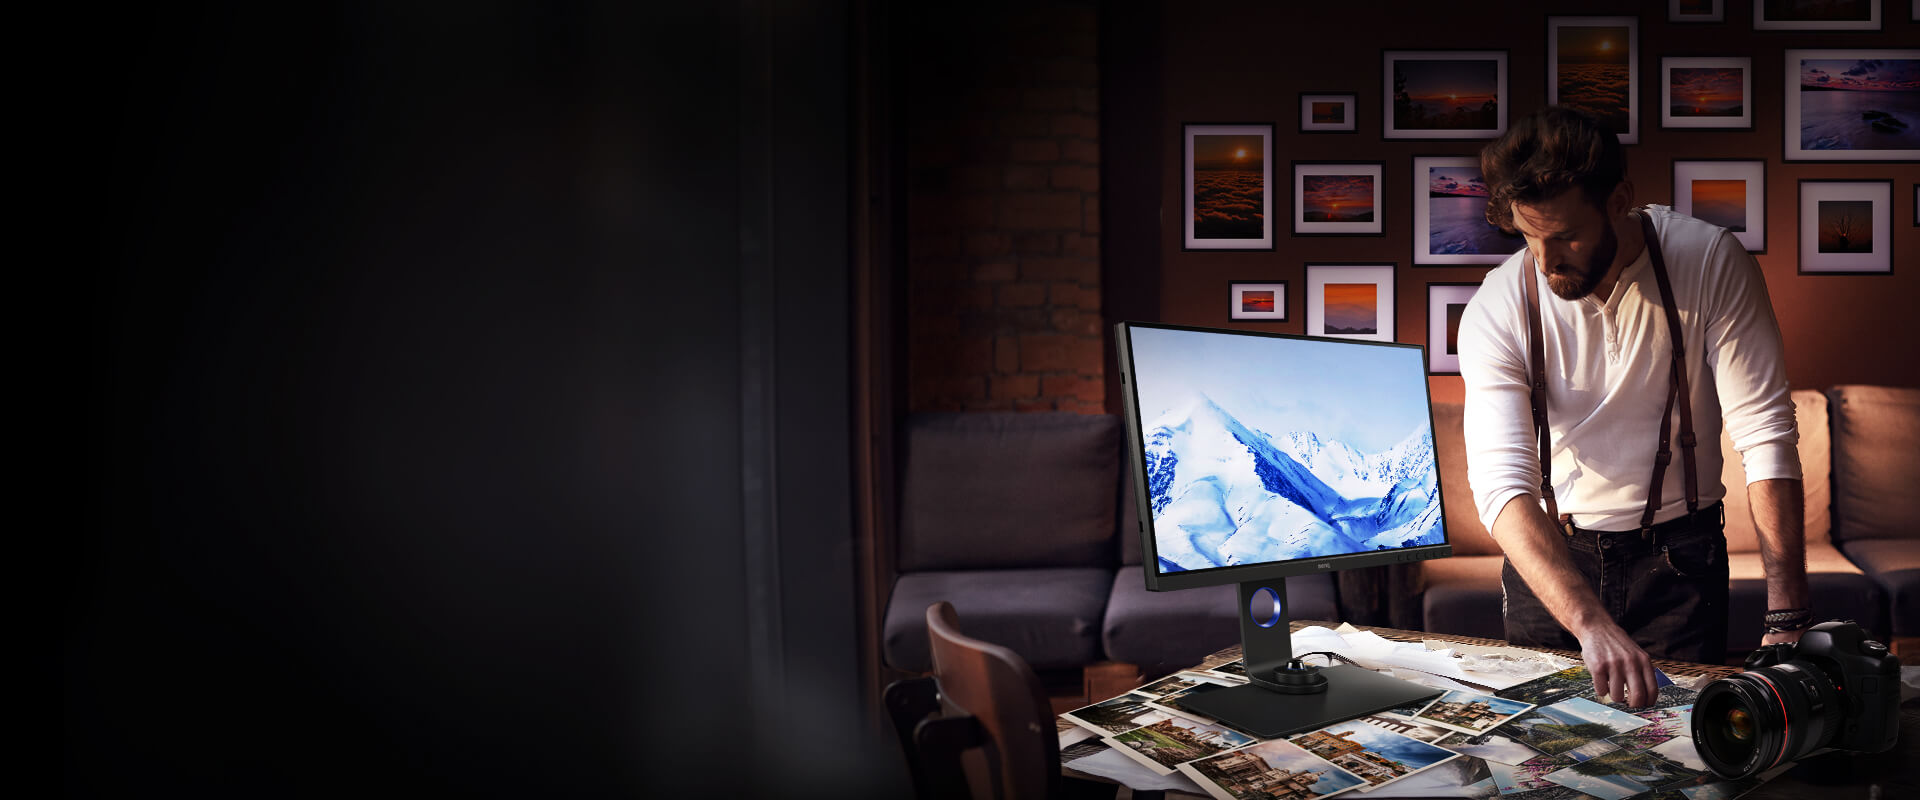 BenQ IPS 27 inch monitor sw270c presented high-leveled of color accuracy in every detail.